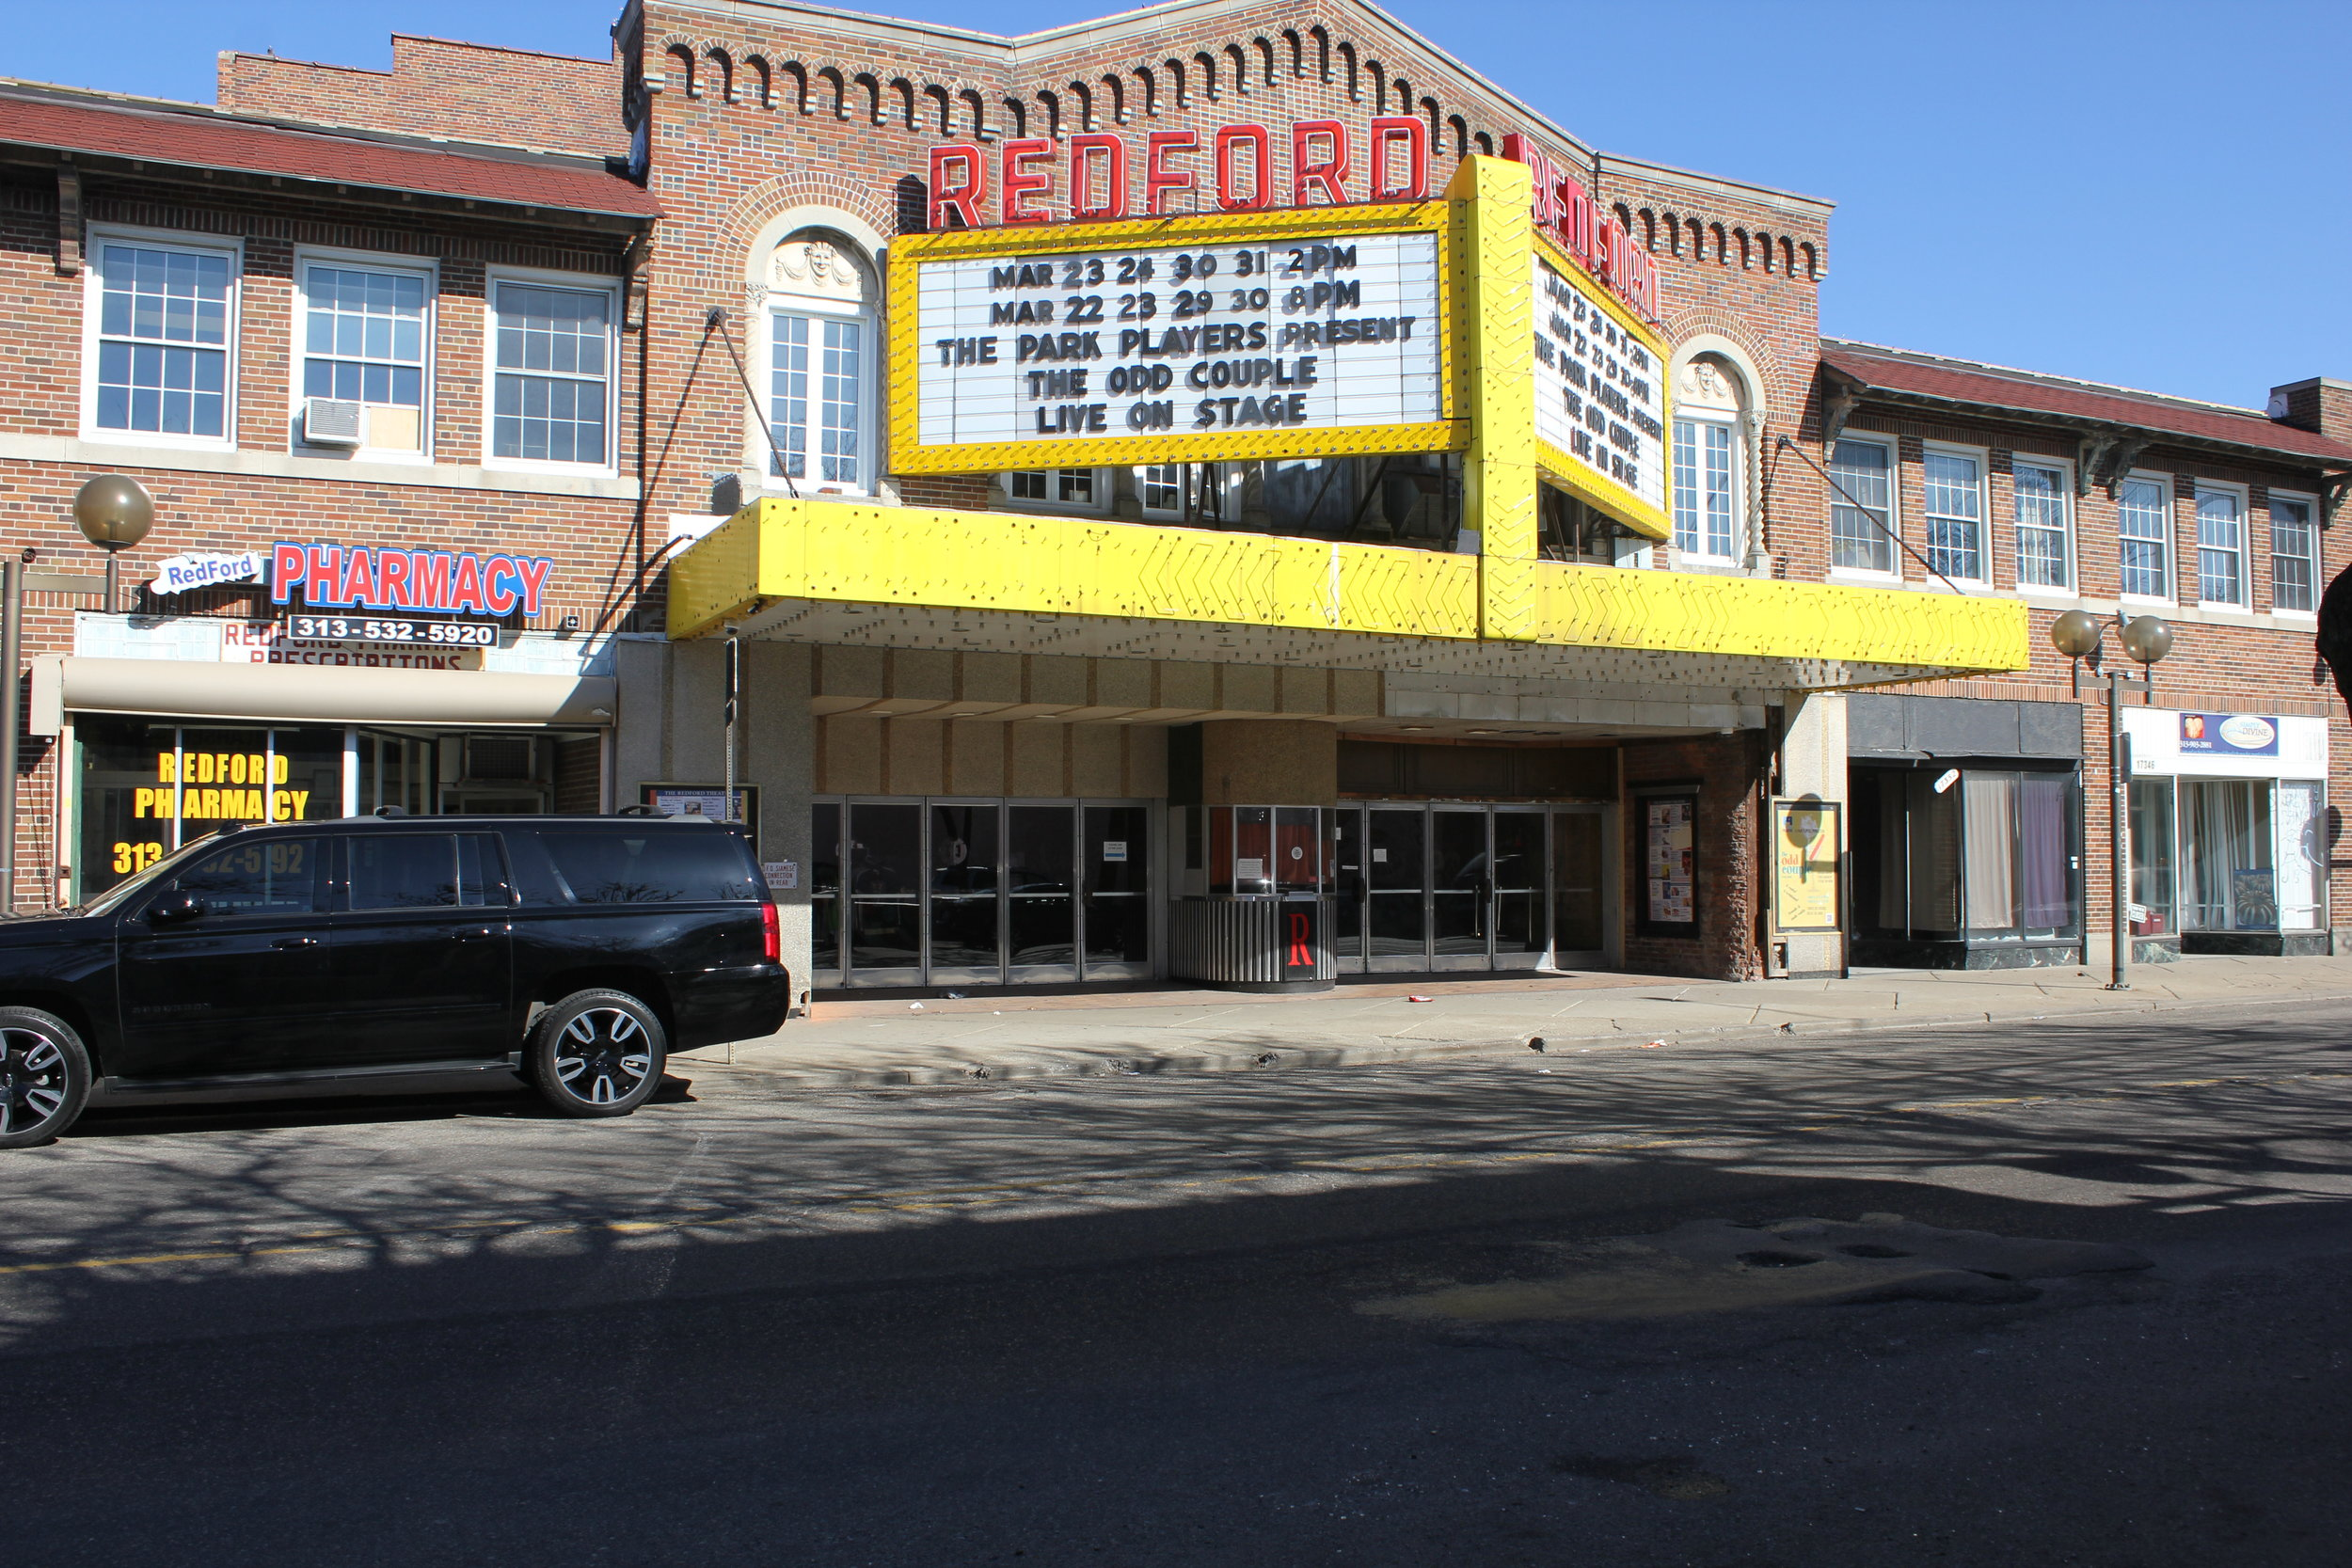 Redford Theater Marquee.JPG